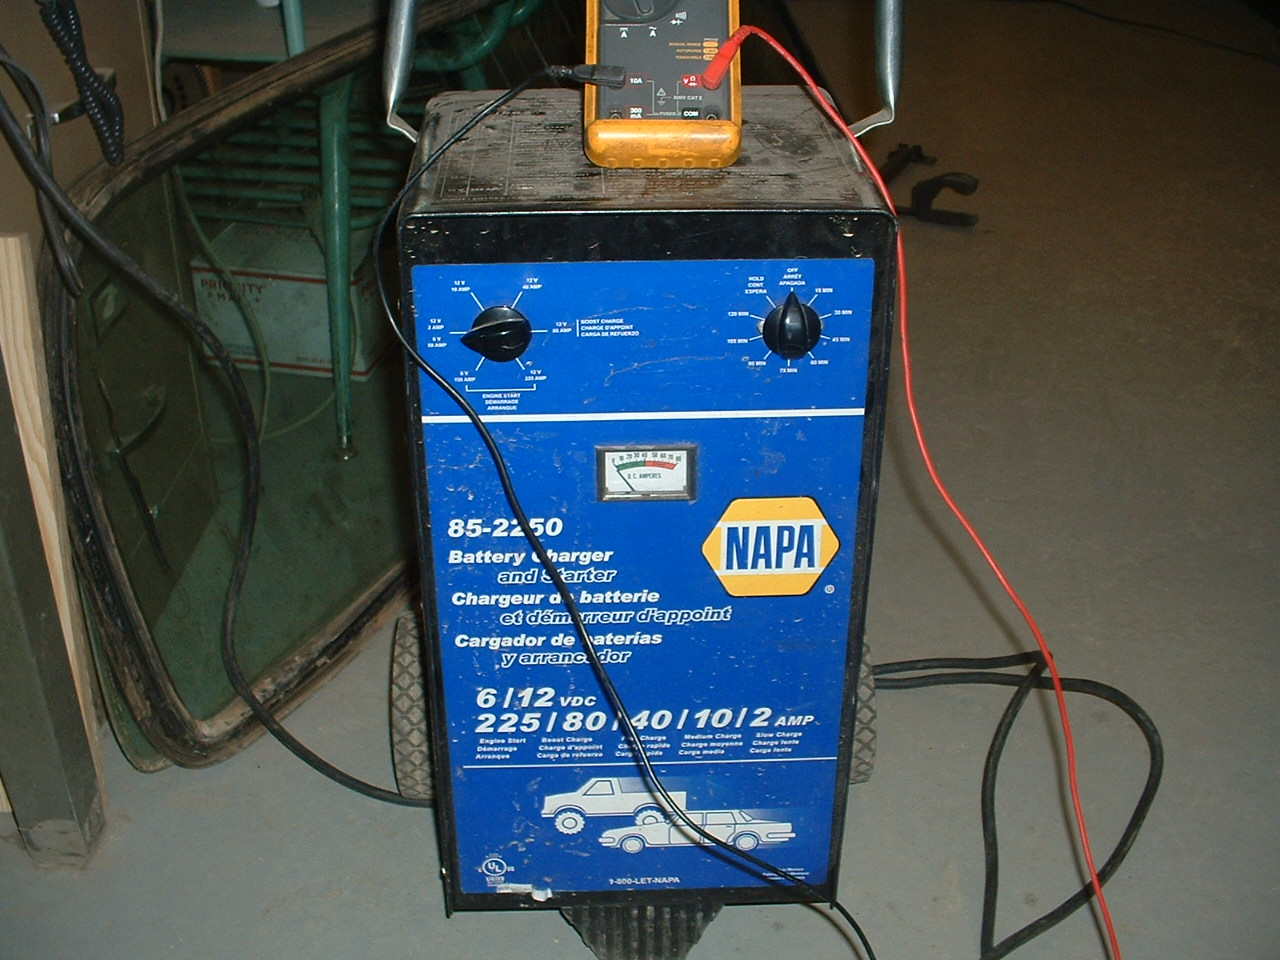 Napa Battery Charger Wiring Diagram : Lestronic battery charger wiring diagram circuit